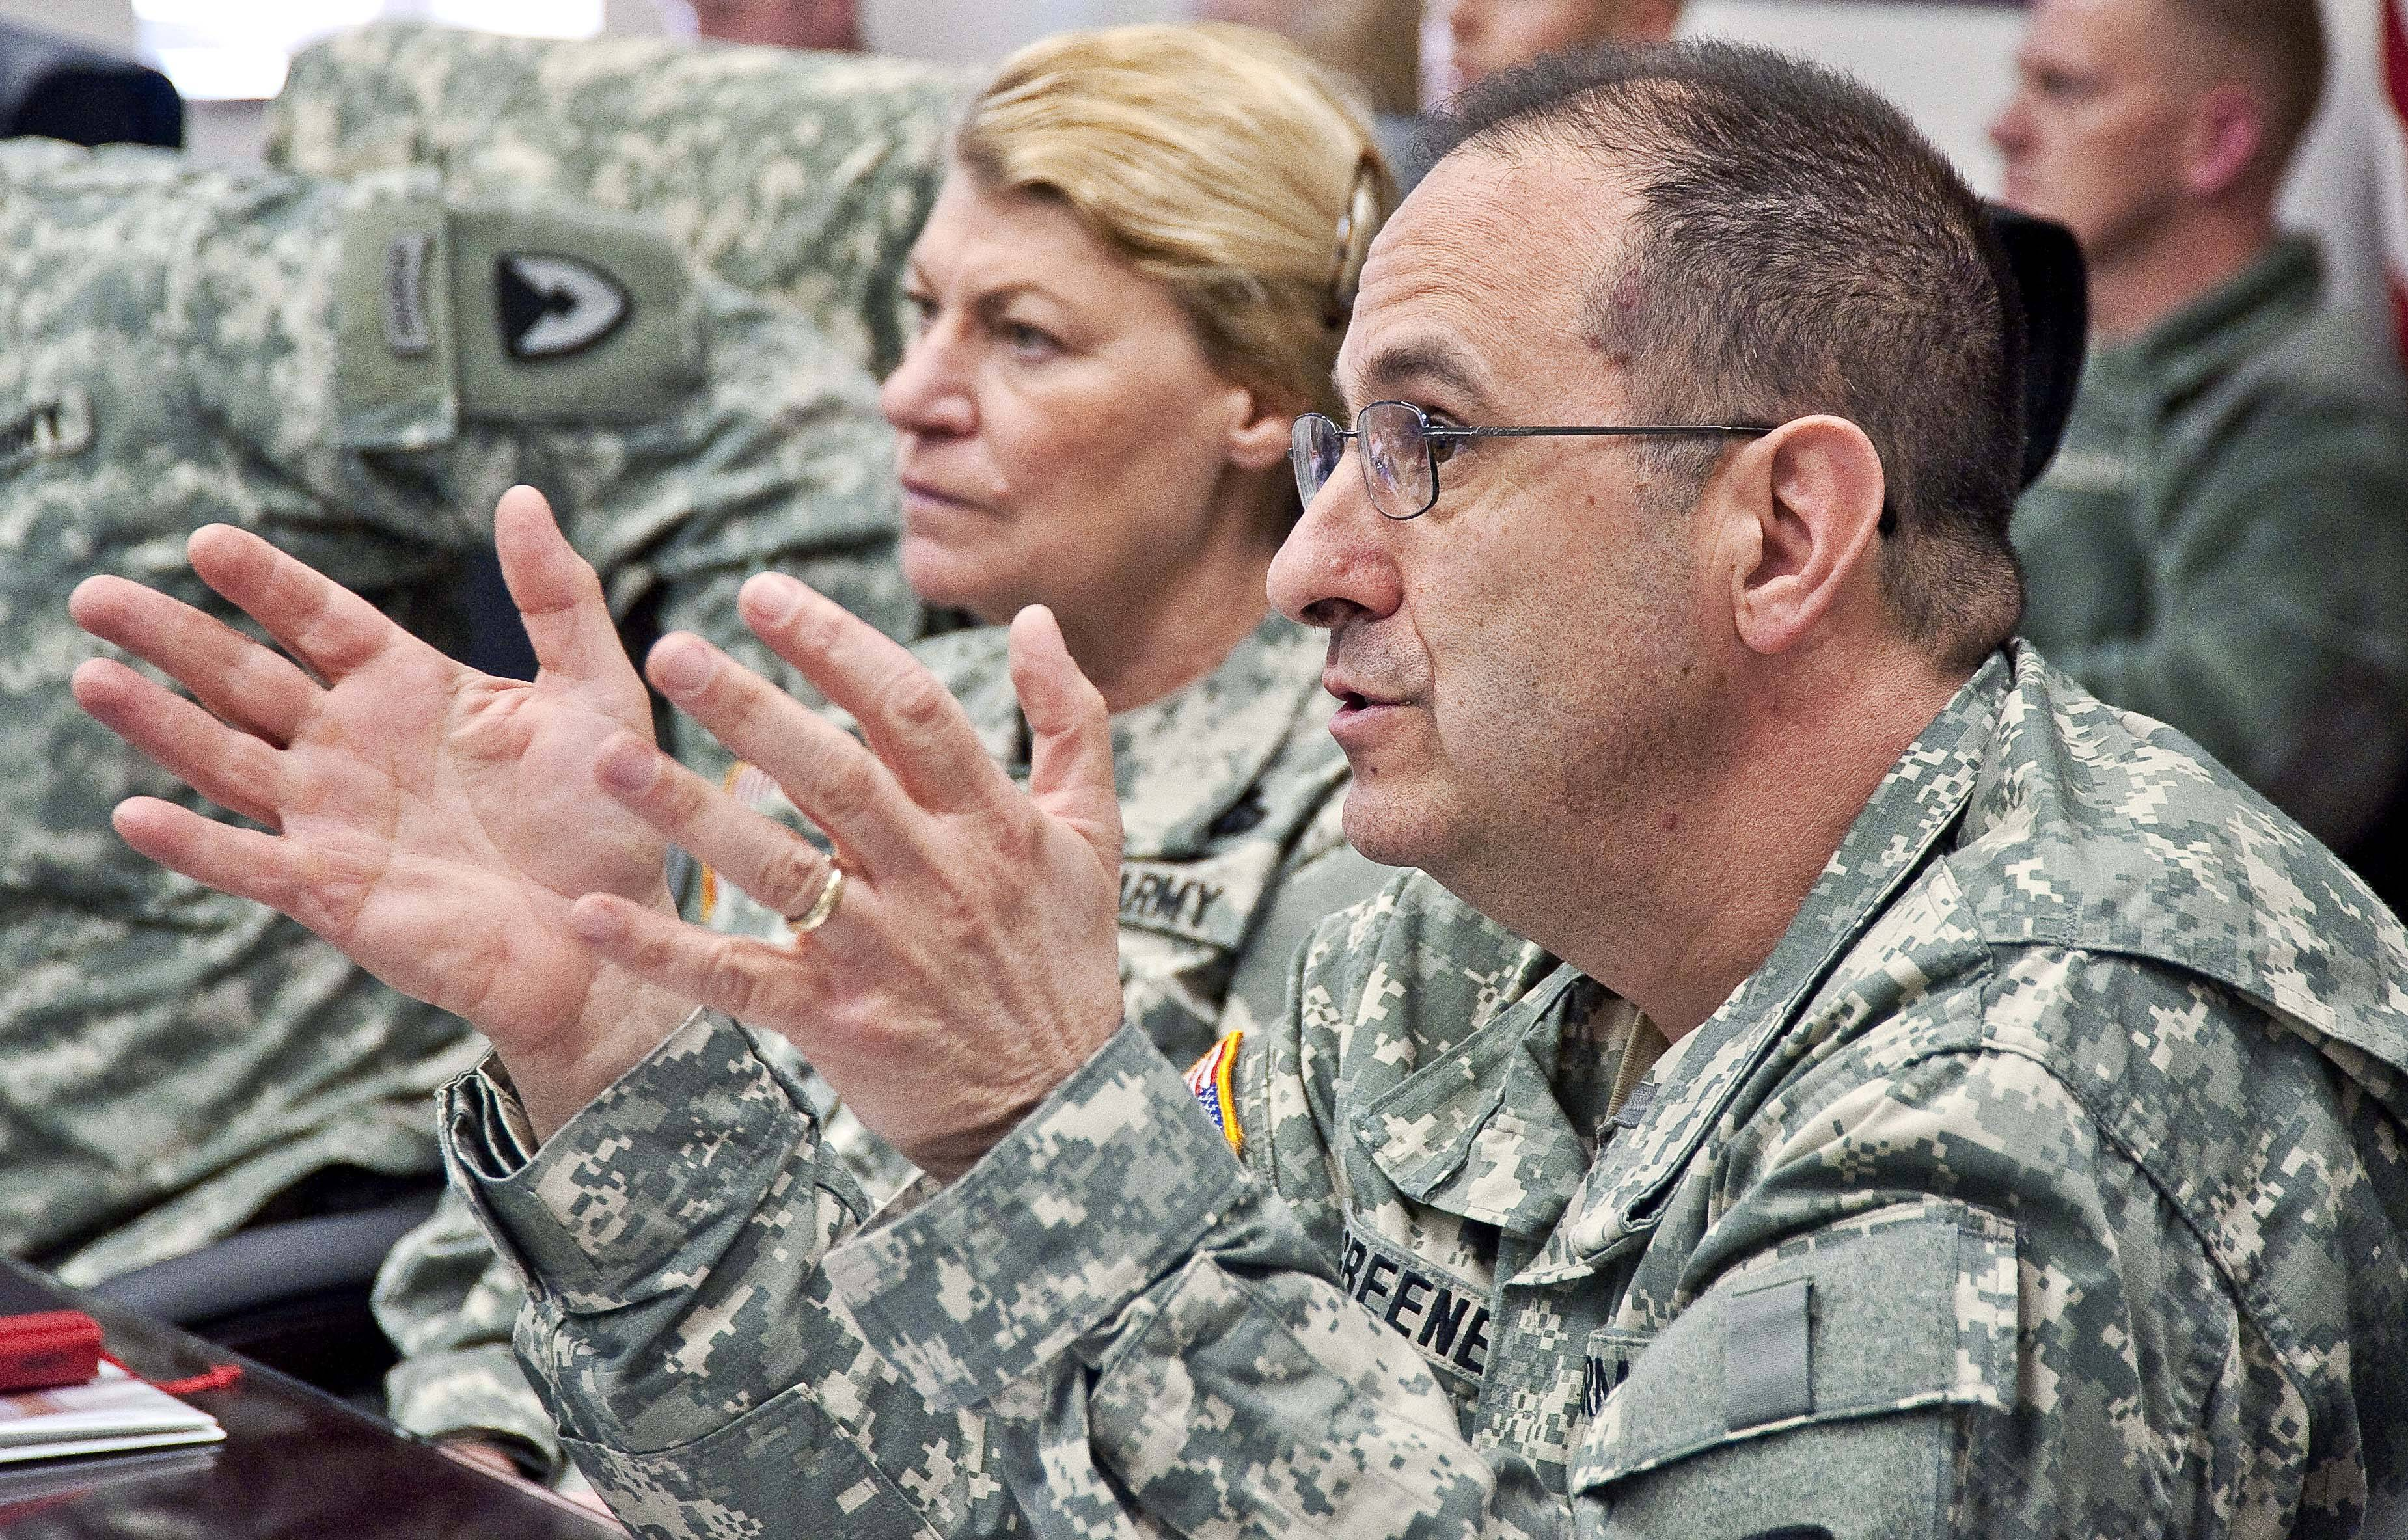 Brig. Gen. Harold Greene, right, speaks beside Gen. Ann Dunwoody at the Natick Soldier Systems Center in Natick, Mass.